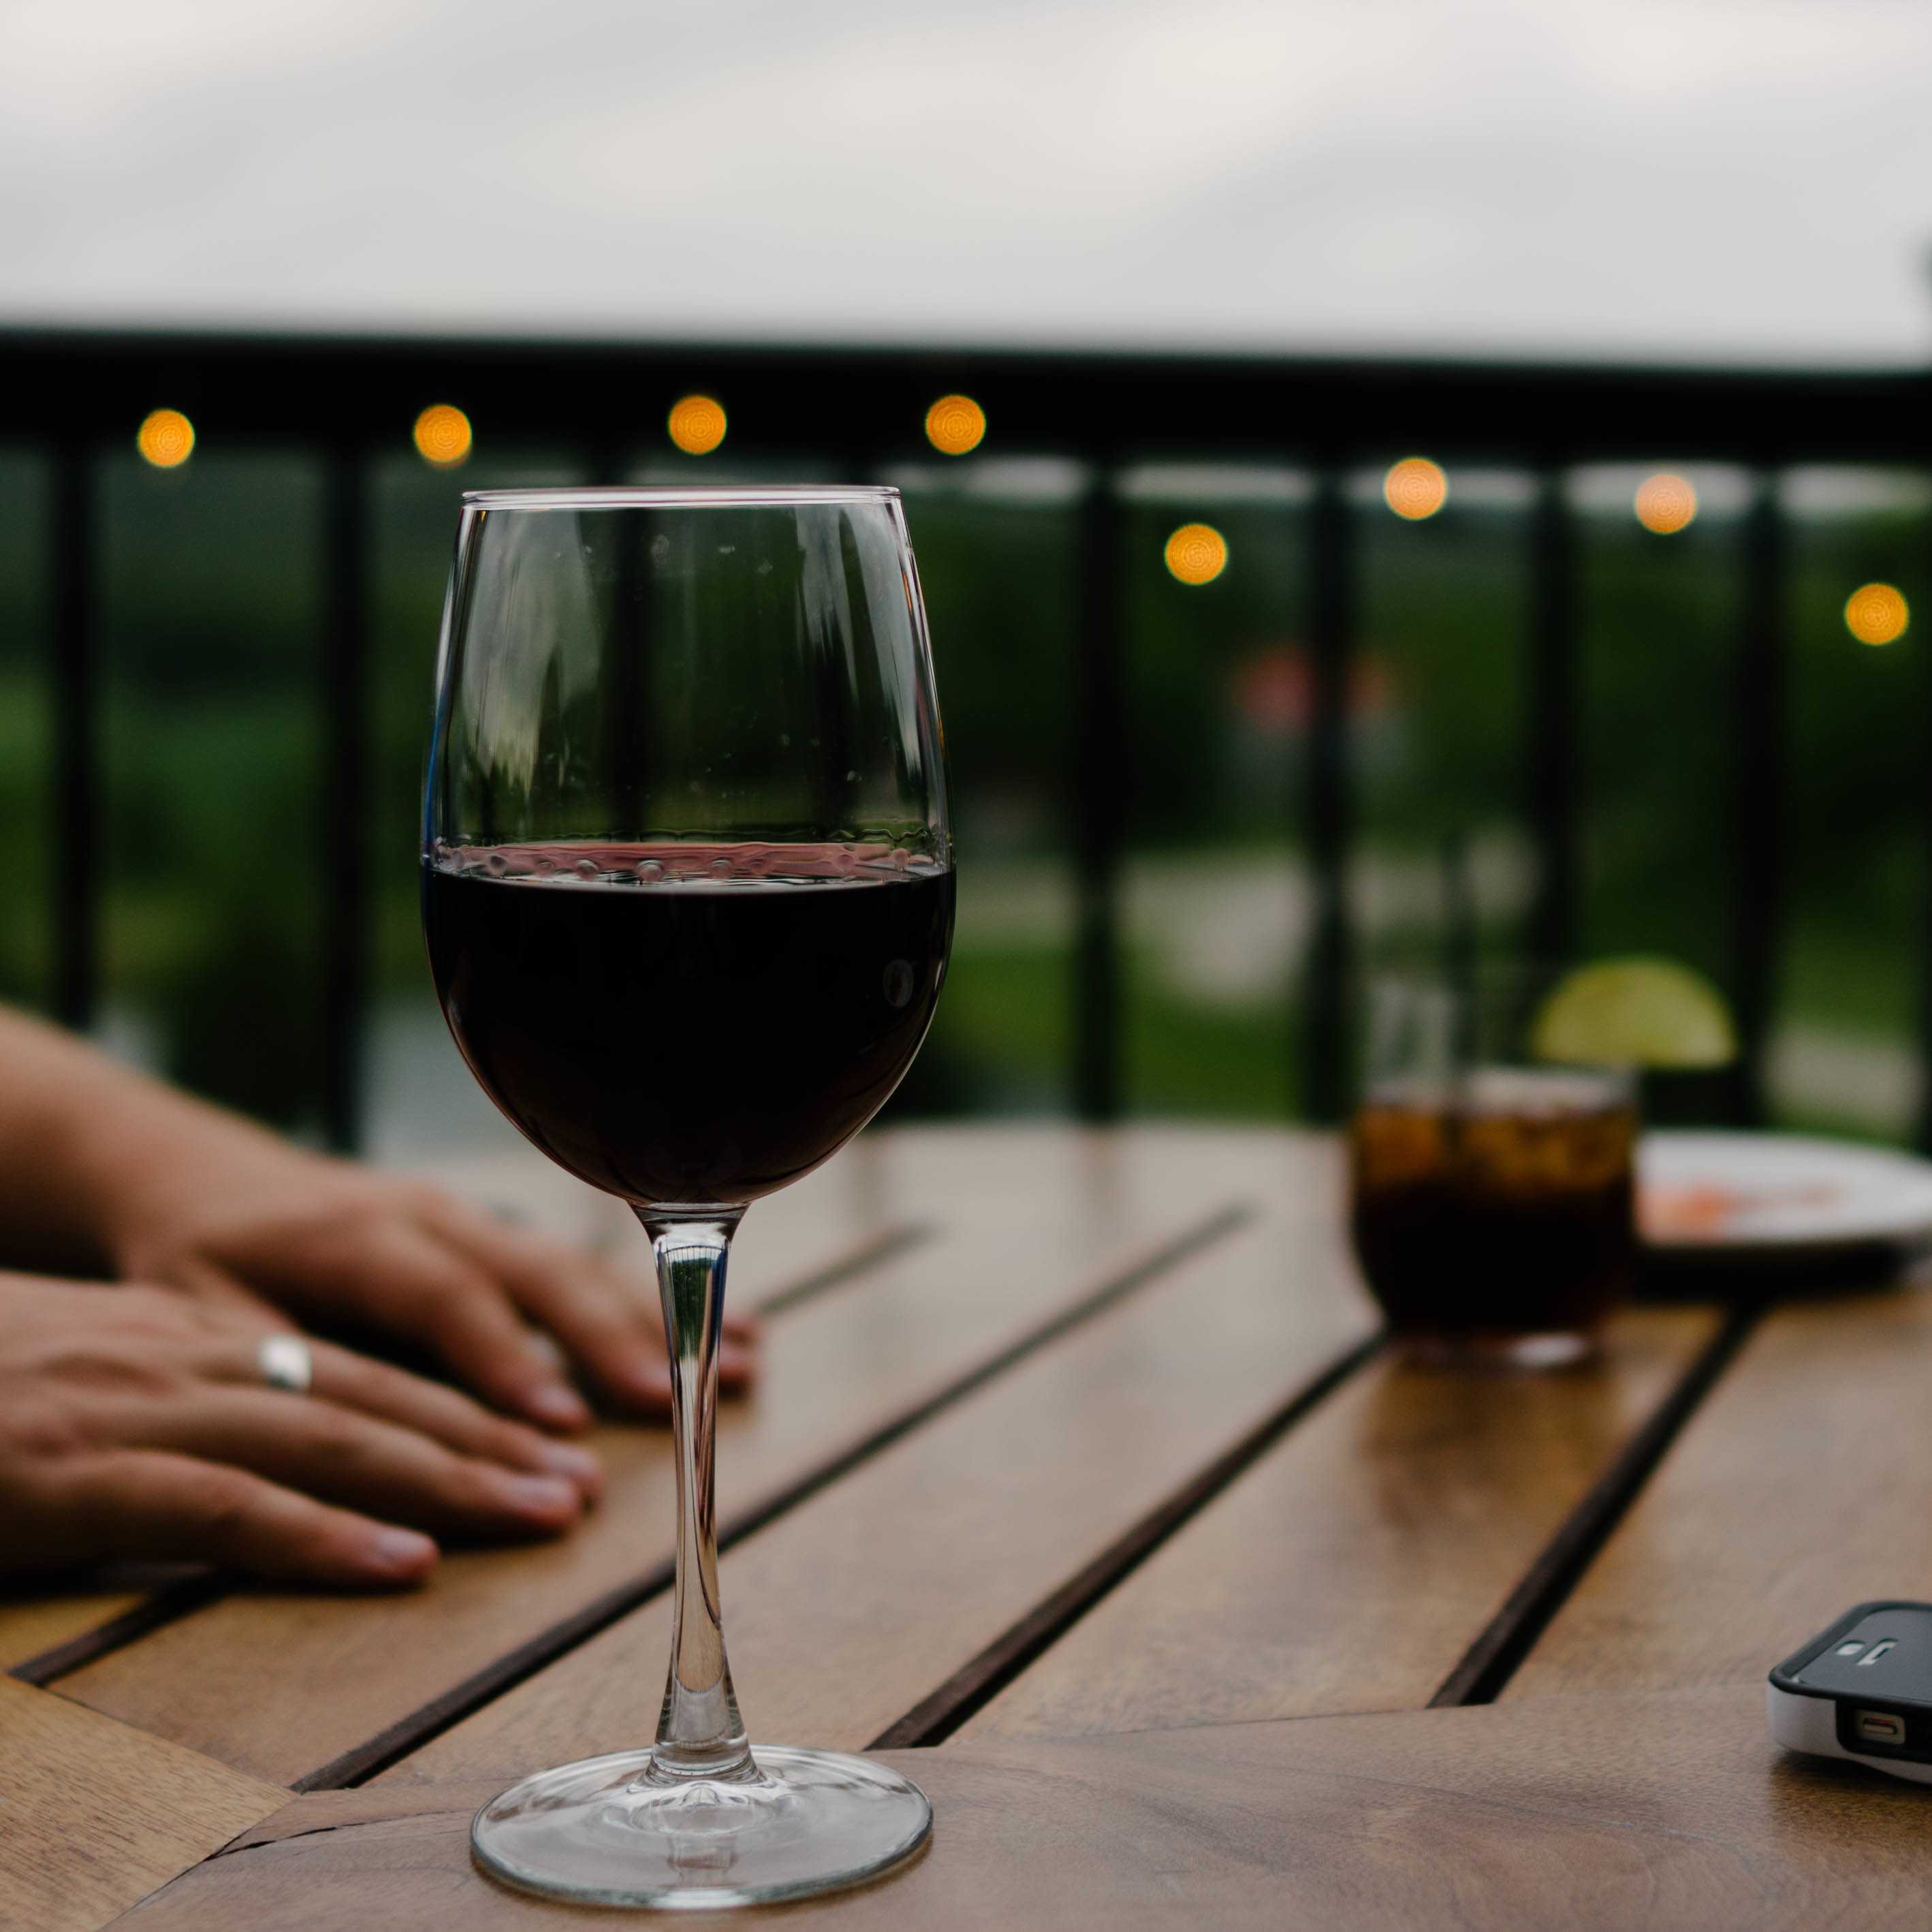 Wine-travels. 3 places to go. (this article can be read in 36 seconds)